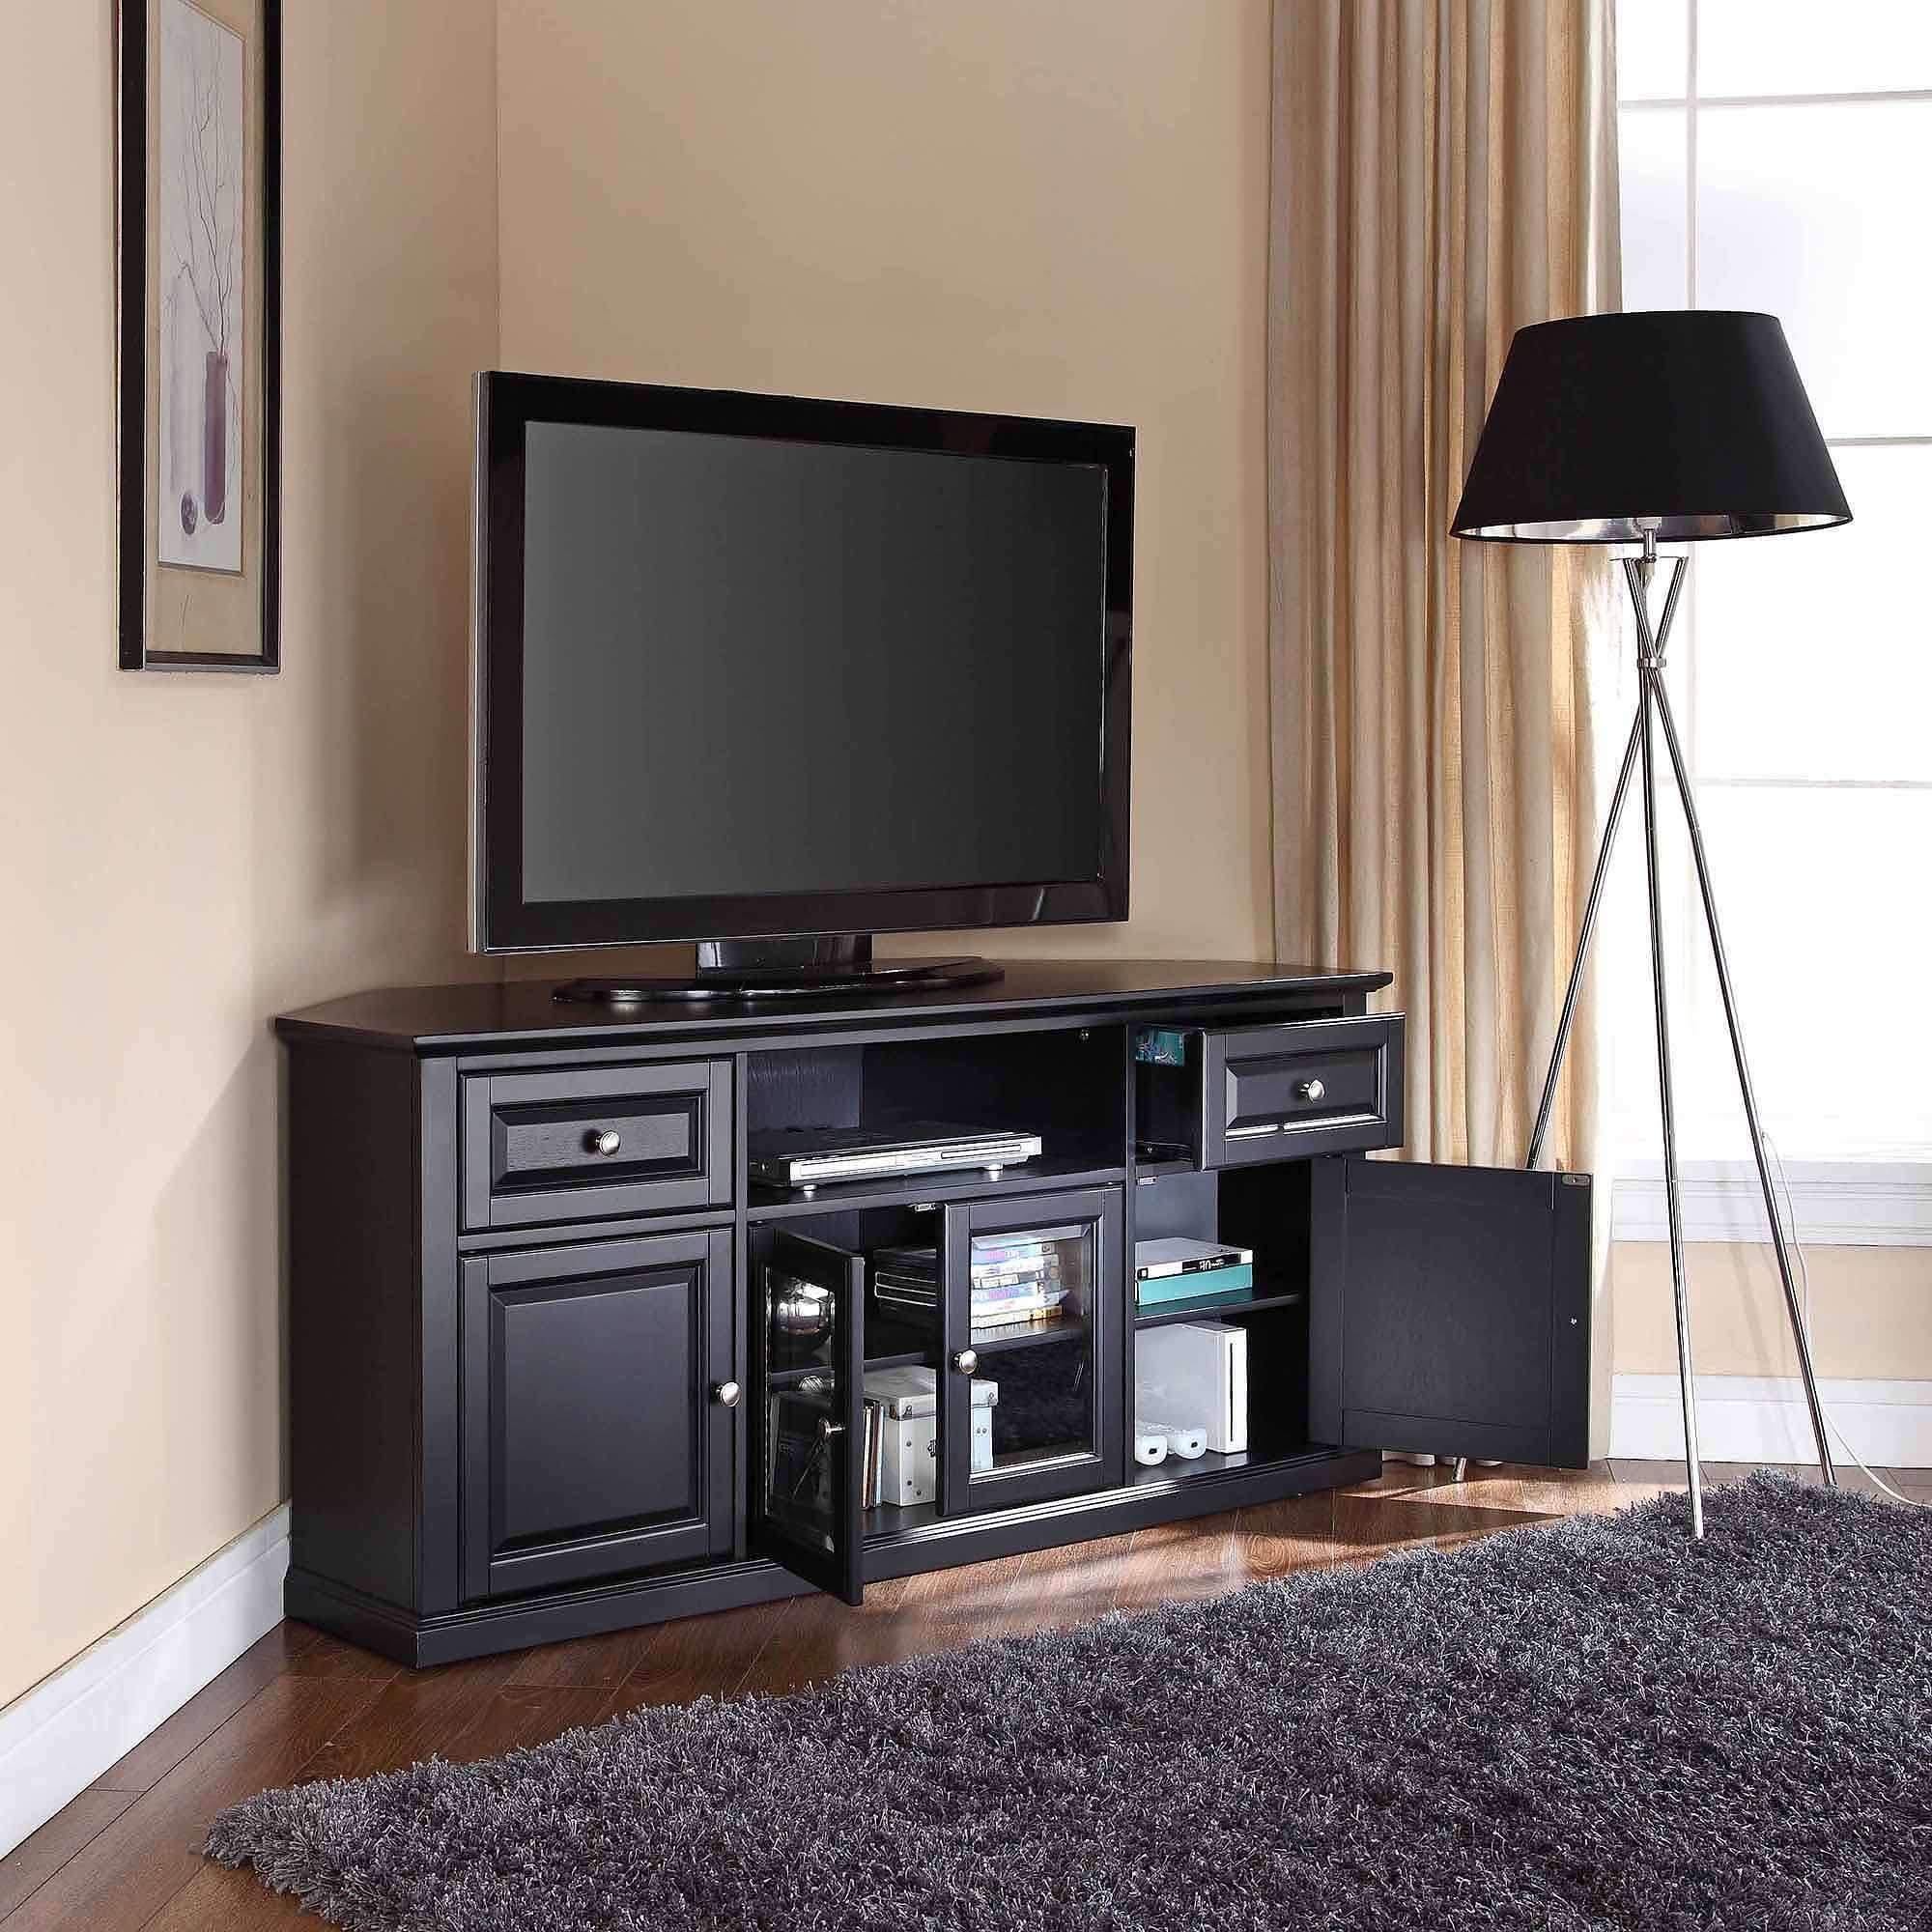 """Crosley Furniture Corner Tv Stand For Tvs Up To 60"""" – Walmart With Regard To Black Wood Corner Tv Stands (View 5 of 15)"""